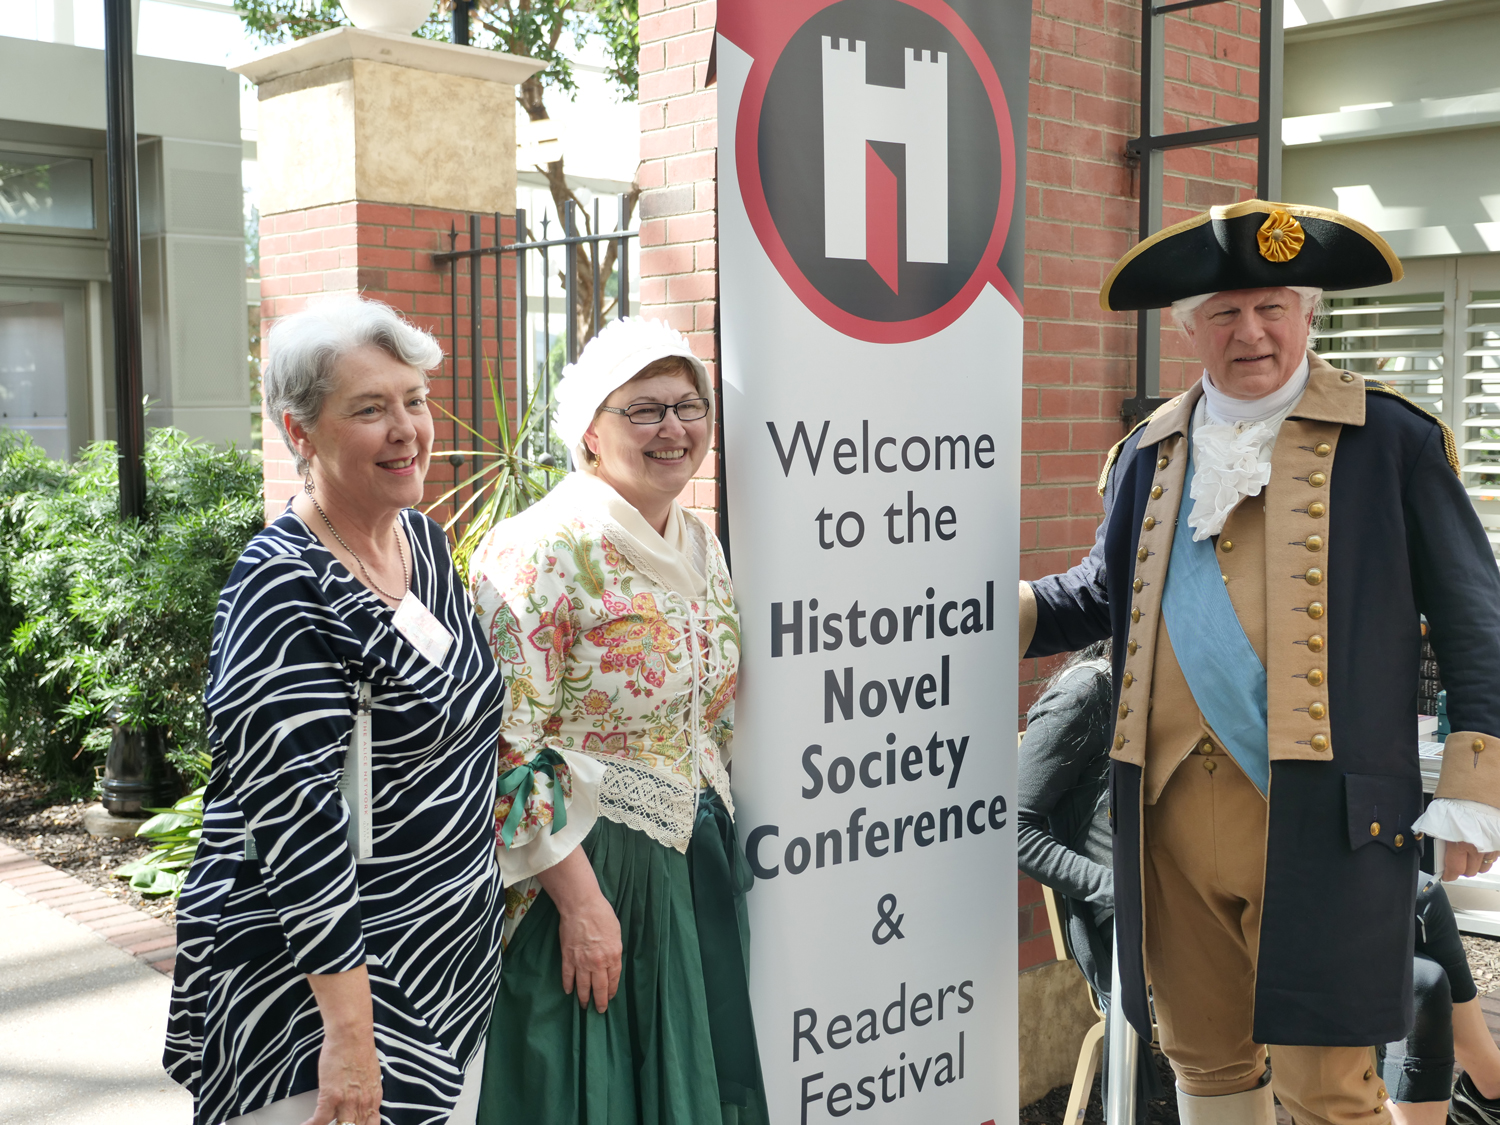 Sandy and Vern Frykholm, dressed as Martha and George Washington, greet attendees beside a sign that welcomes attendees to the Historical Novel Society Conference and Readers Festival.